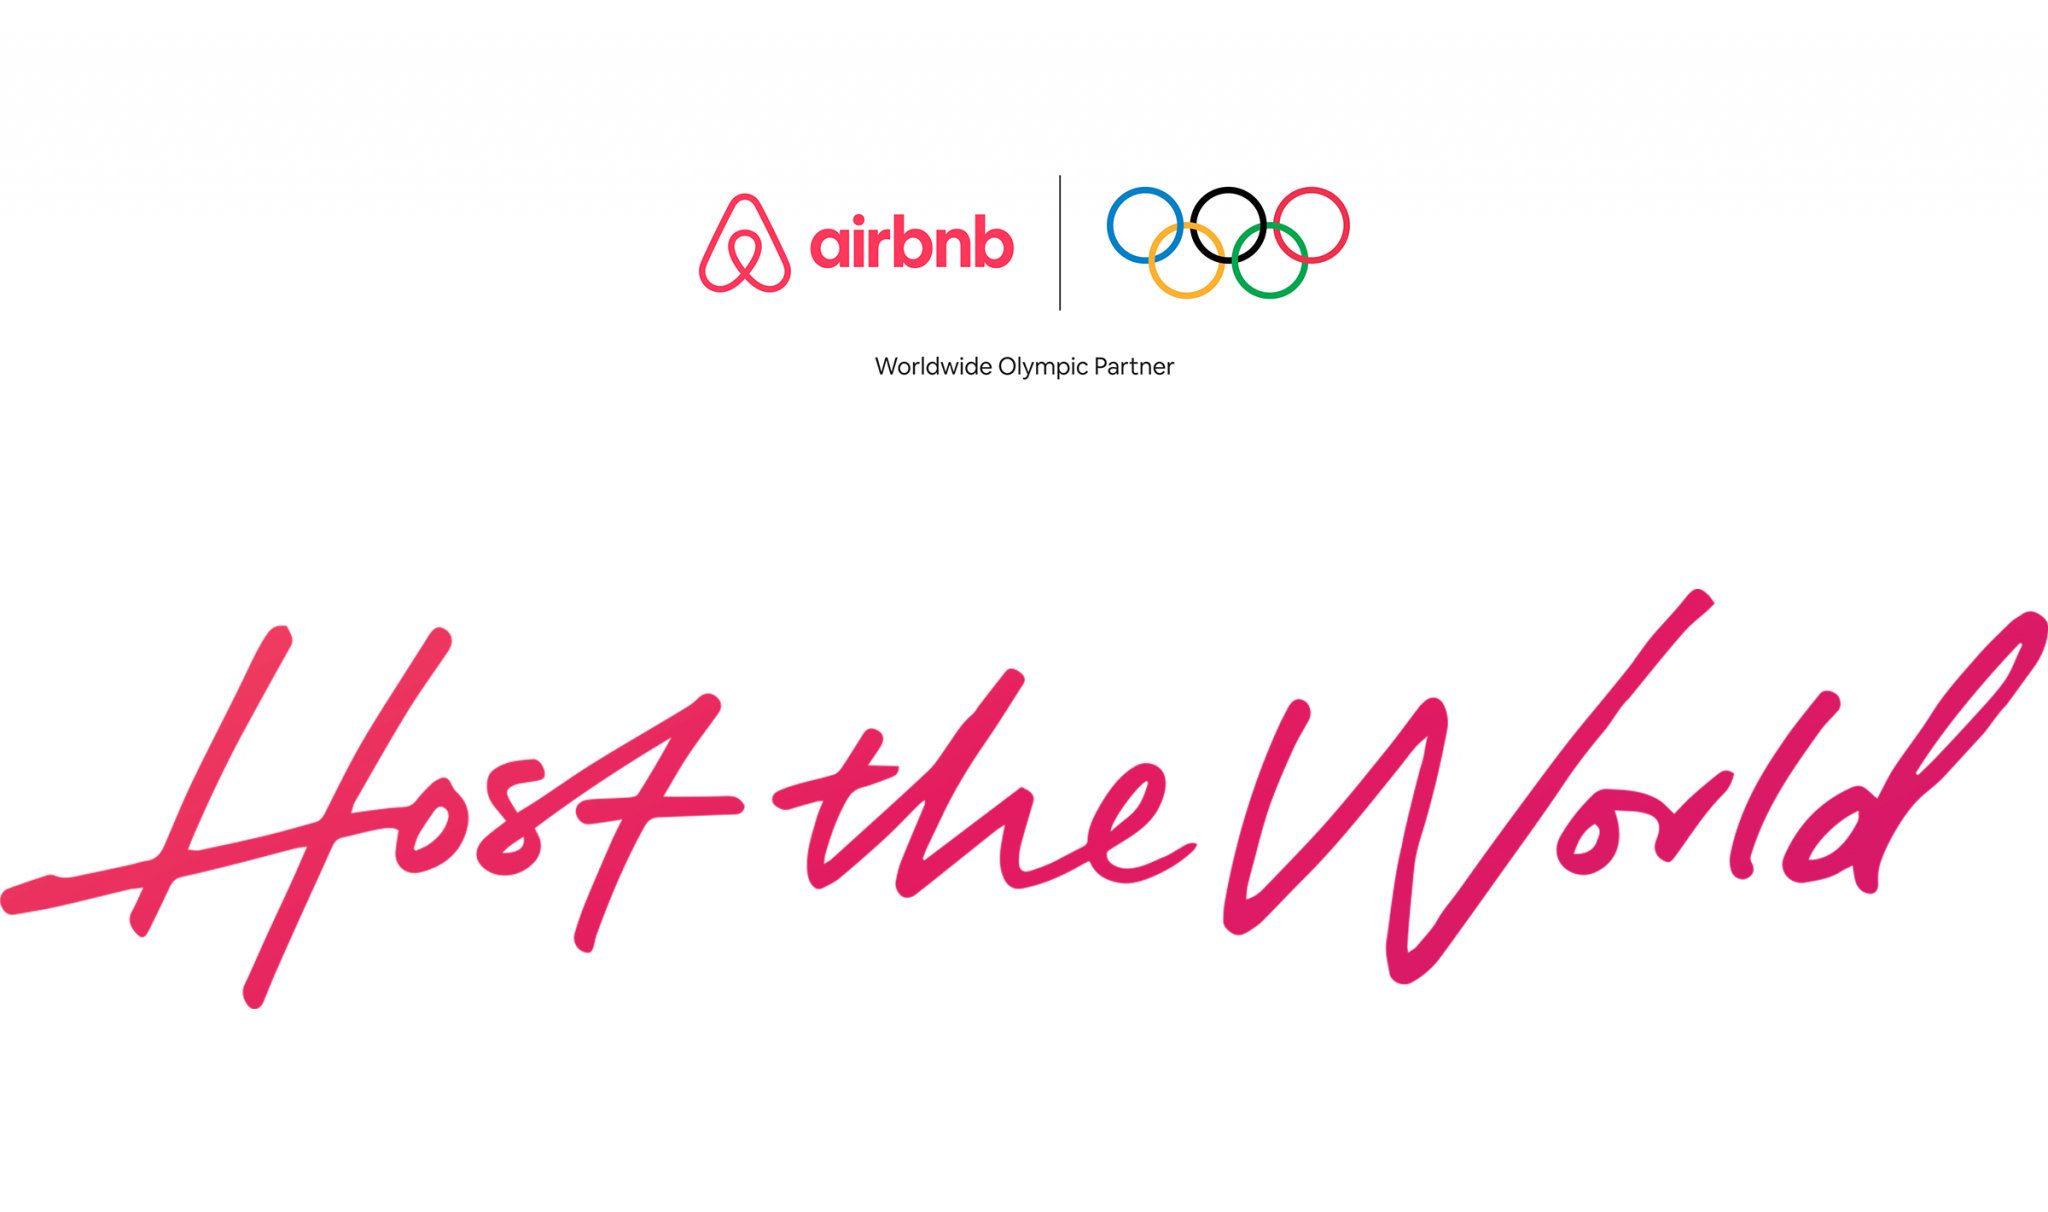 Airbnb becomes the 14th worldwide Olympic partner for Tokyo 2020 ©Airbnb